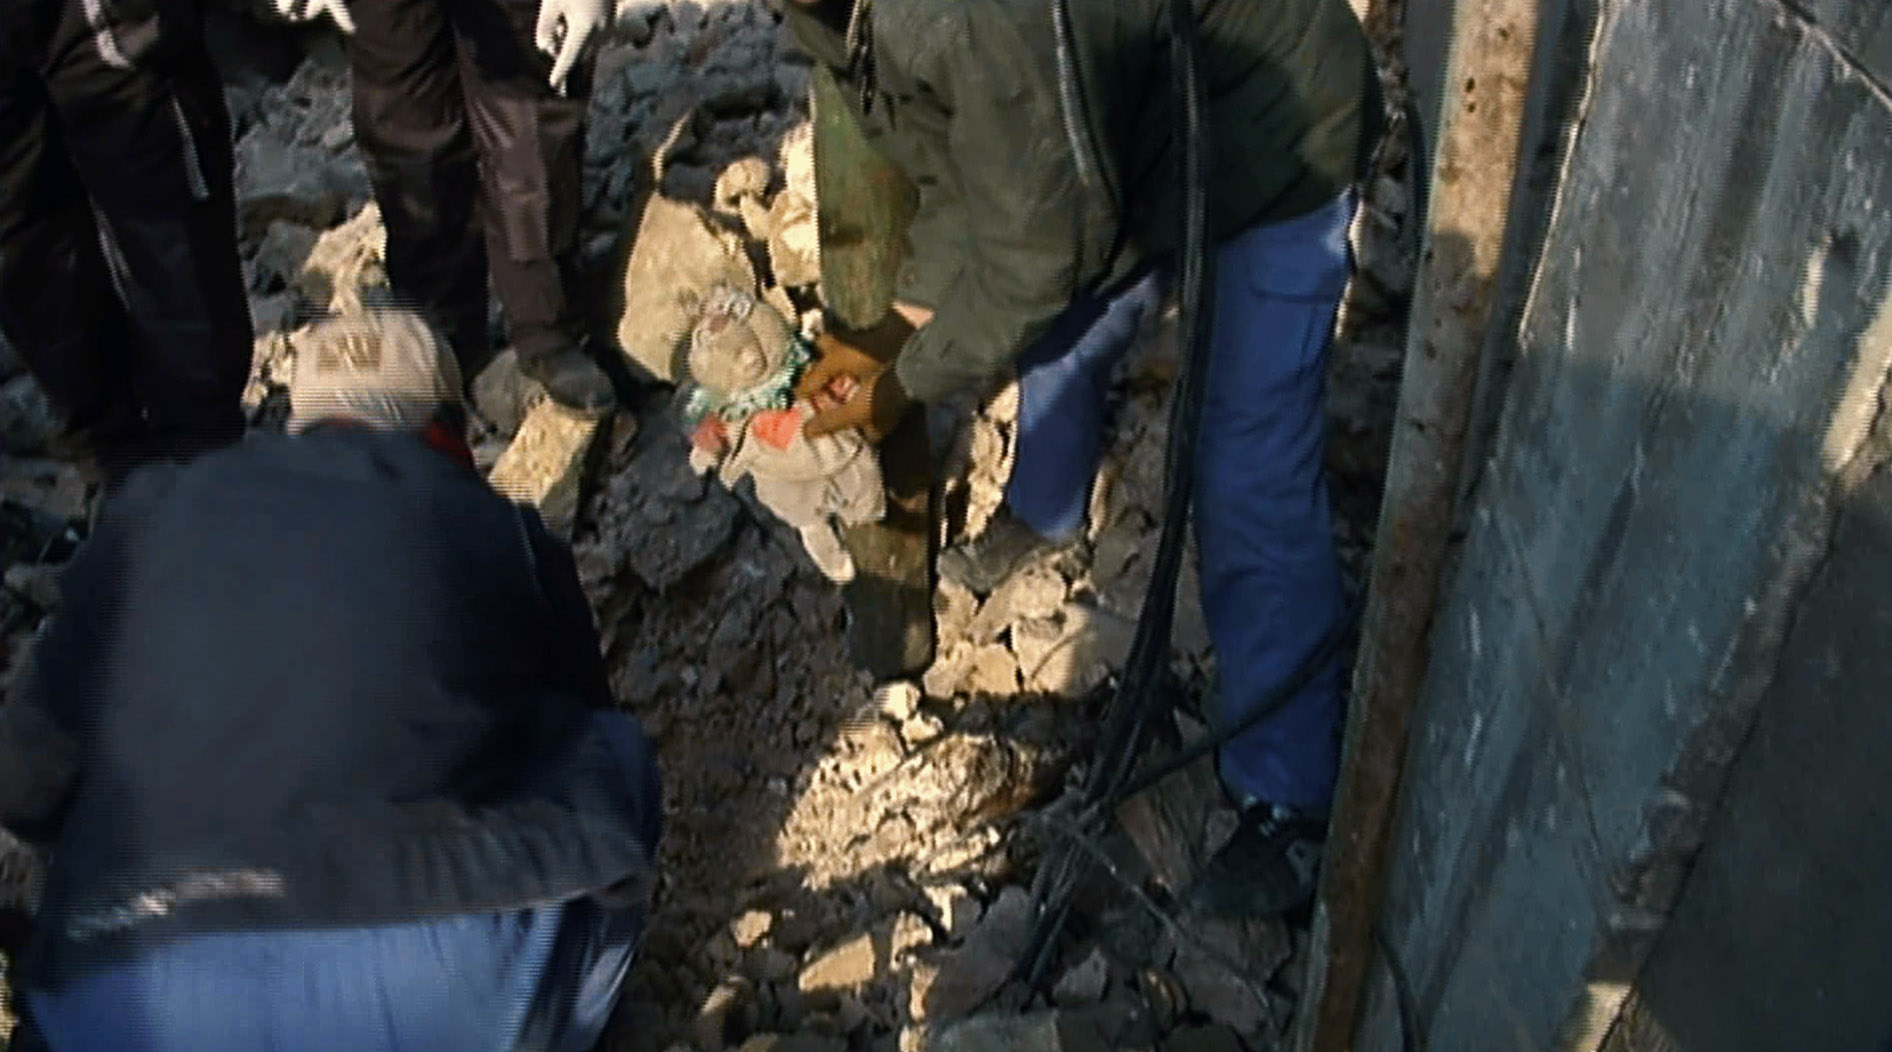 An Iraqi rescue worker holding a stuffed animal belonging to an unidentified child found dead under the rubble of the Old City in Mosul. January 2018. (K Omar/VOA)